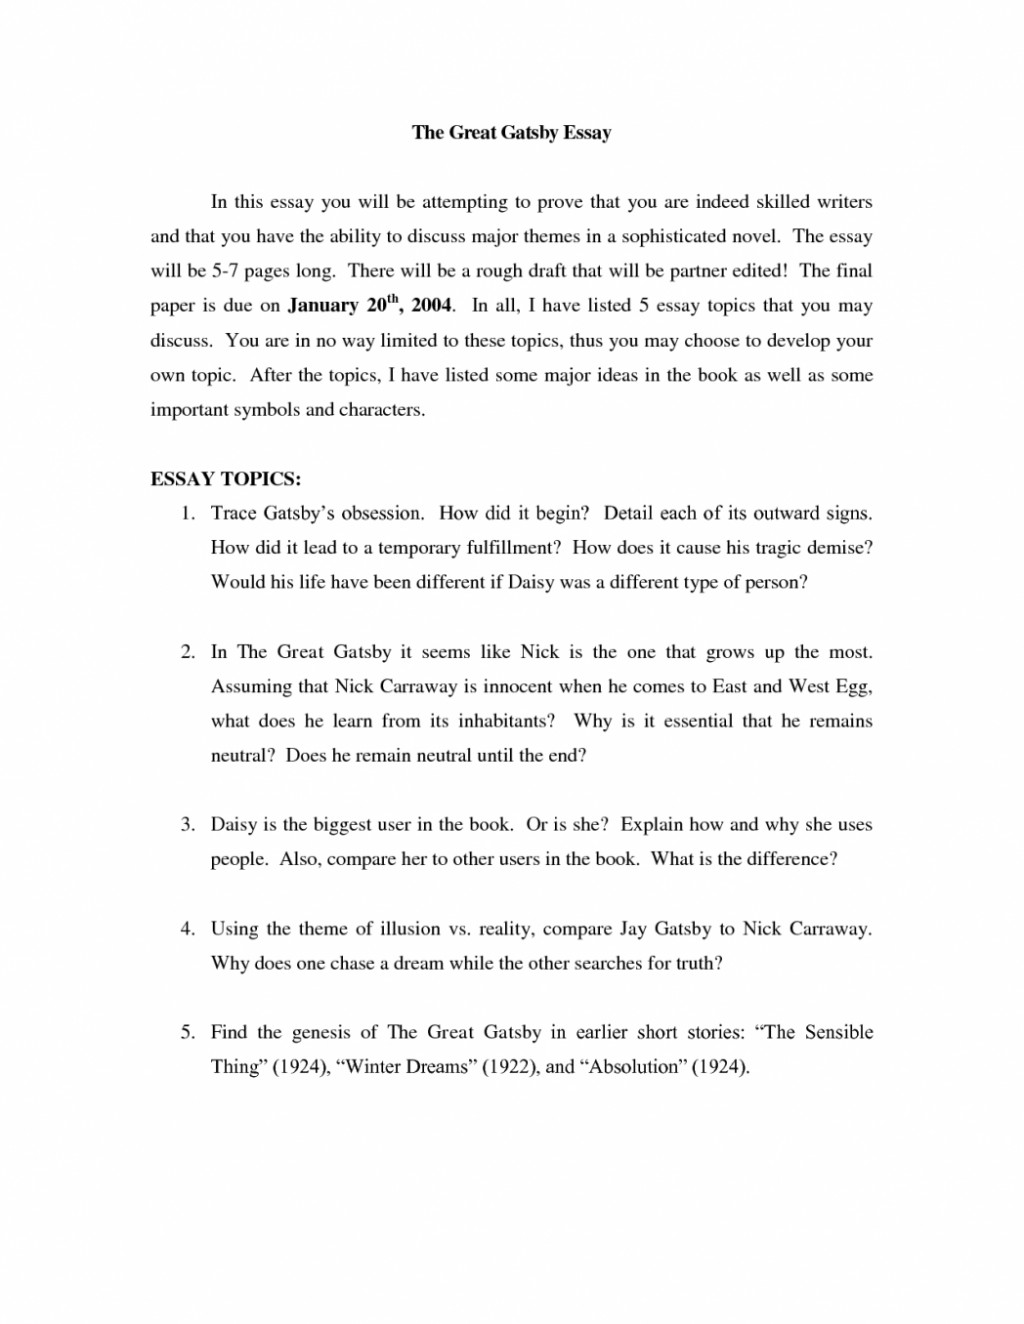 016 Essay Example Grabbers For Essays Attention Grabber Writing College Level Thesis Statement The Great Gatsby Template 4ni Examples Of Expository Persuasive Imposing Good Interesting Large